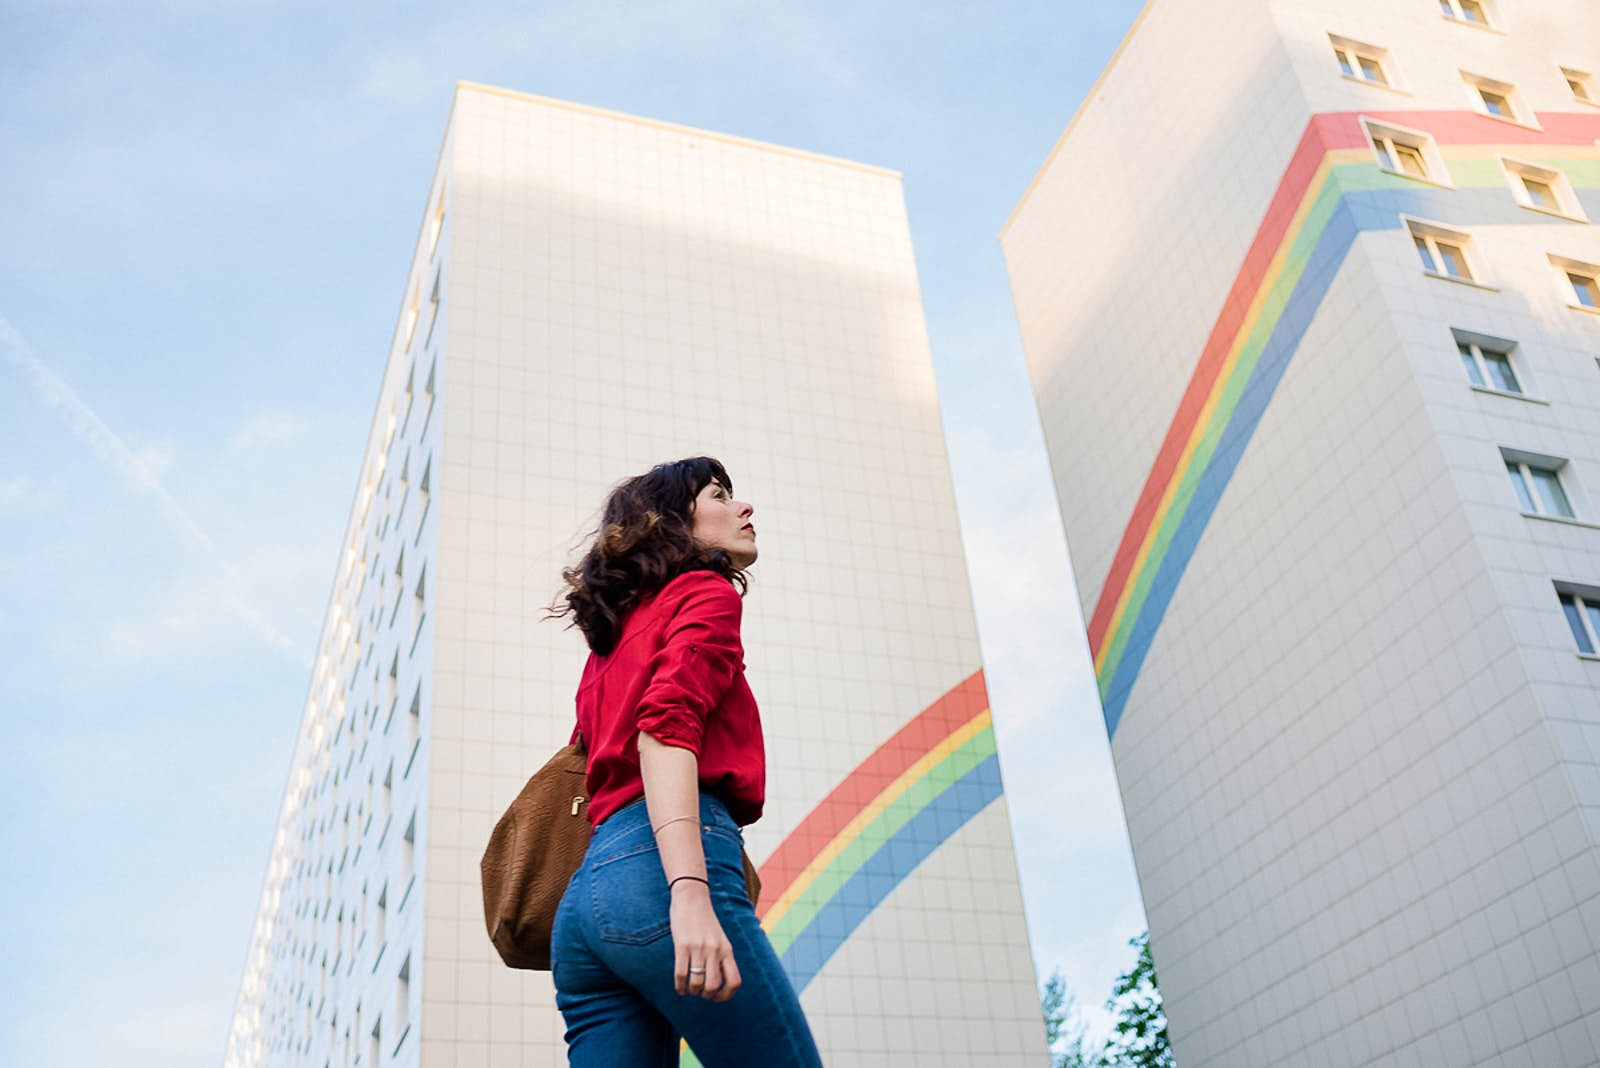 A woman looks to the sky against the the backdrop of a building in Berlin with a rainbow painted across it.